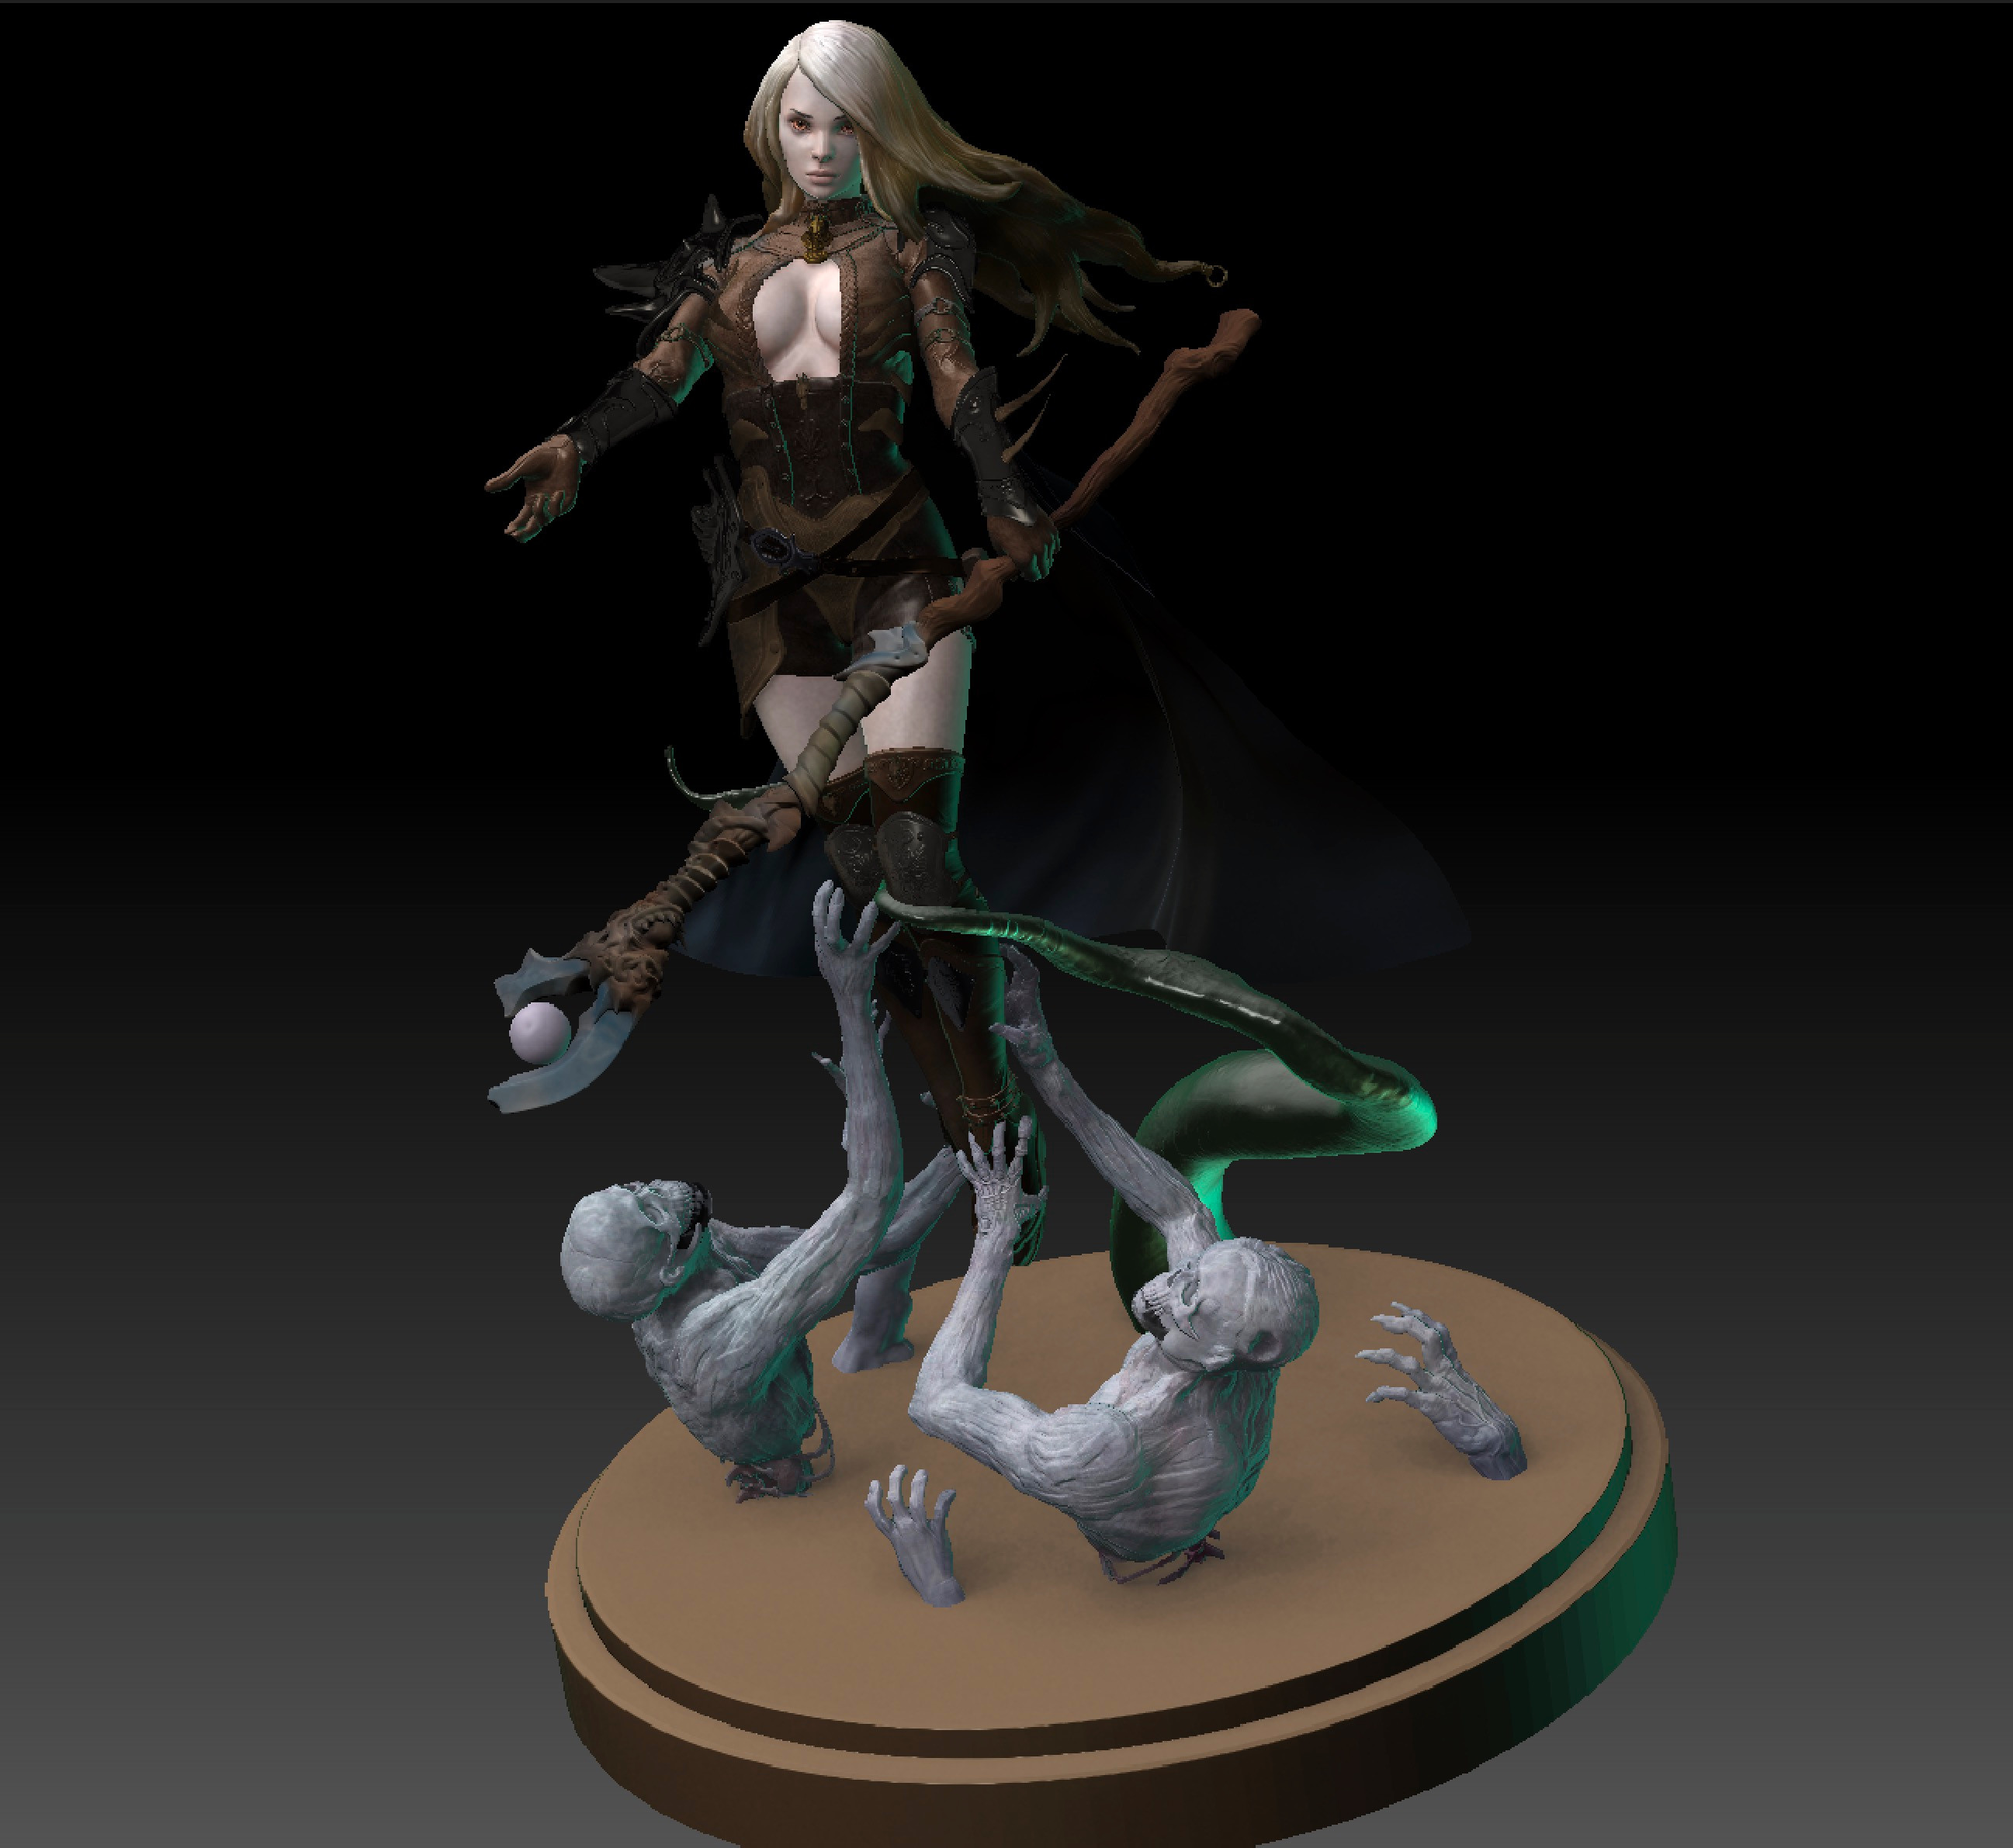 adding the lower part with the zombies and creatures to the figure as also a base for 3d-printing later.